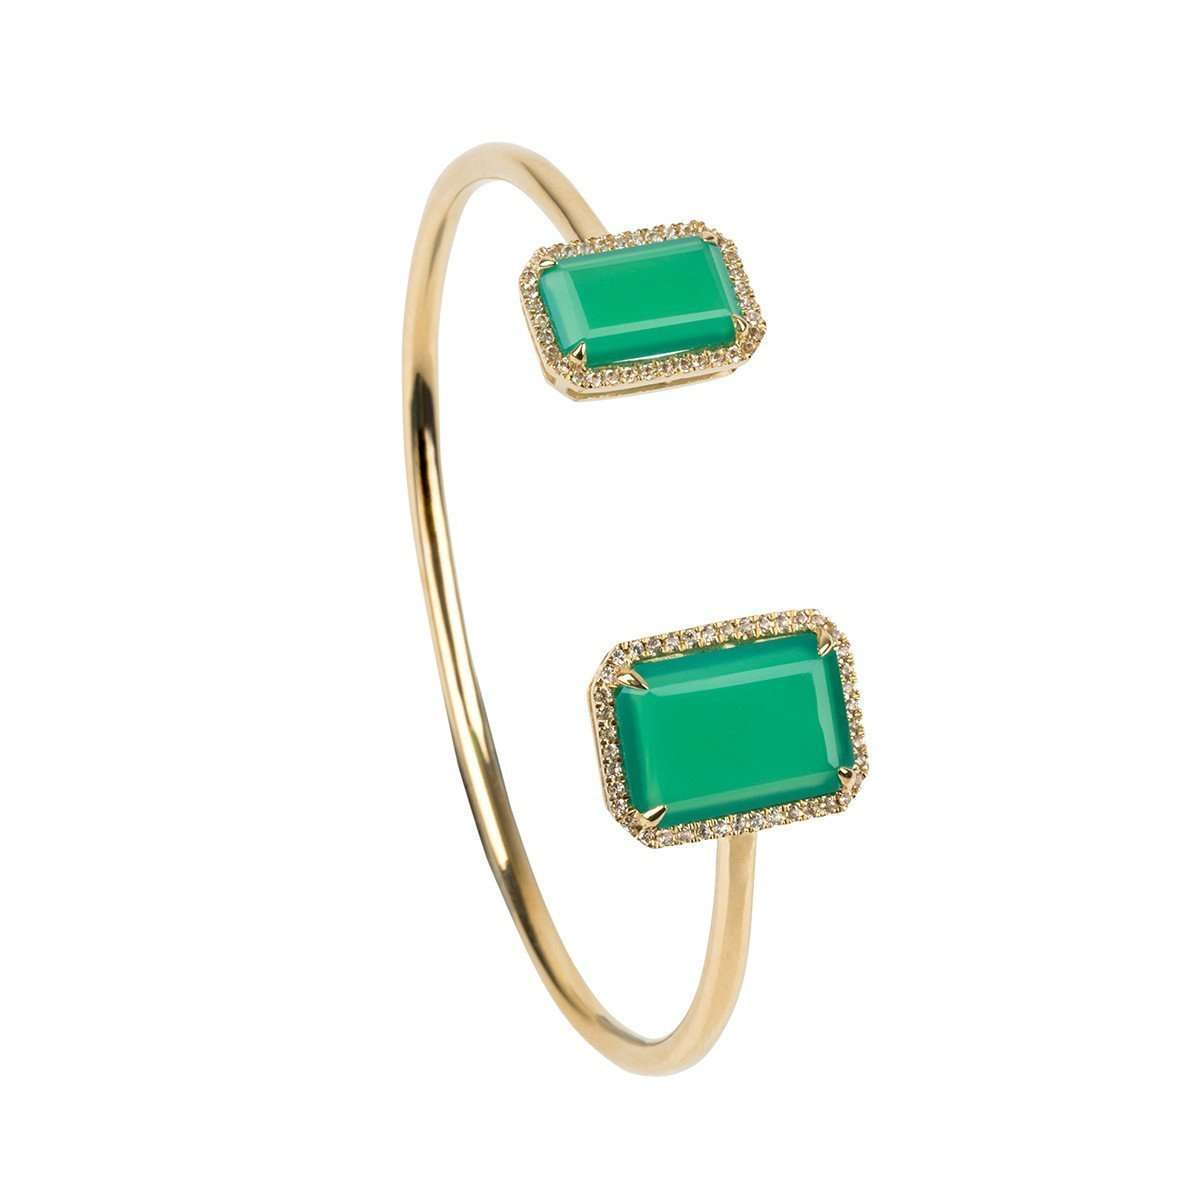 Electra Chrysoprase Bangle-Emily Mortimer Jewellery-JewelStreet US